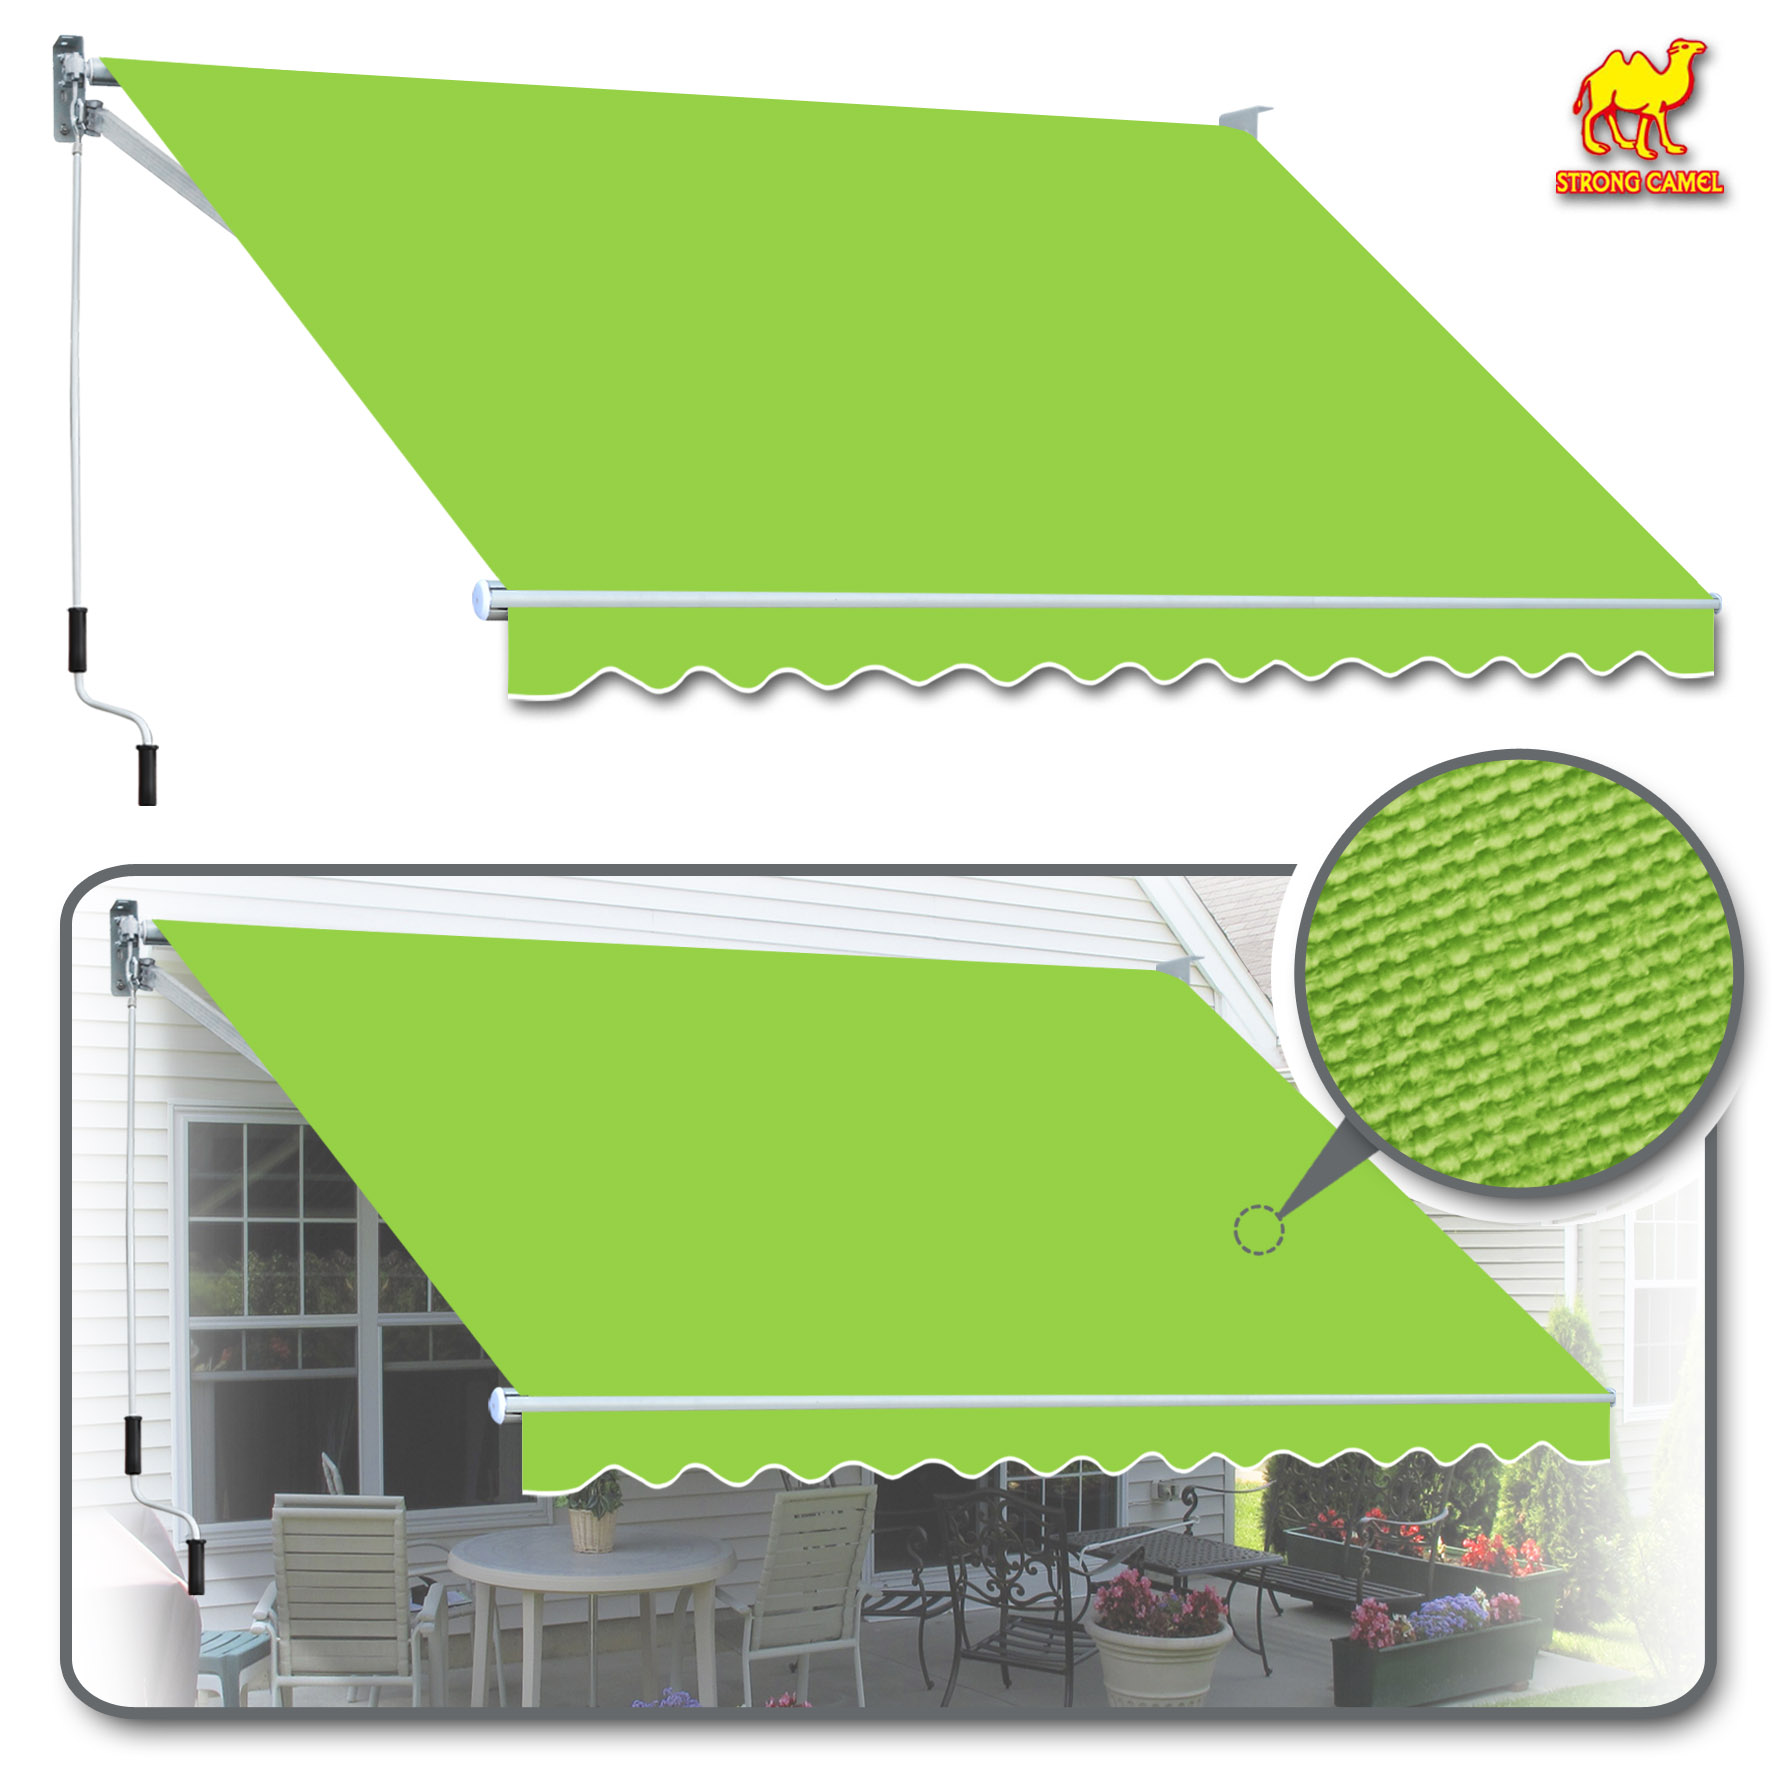 Strong Camel 12' x 8' Manual Retractable Patio Deck Awning ...